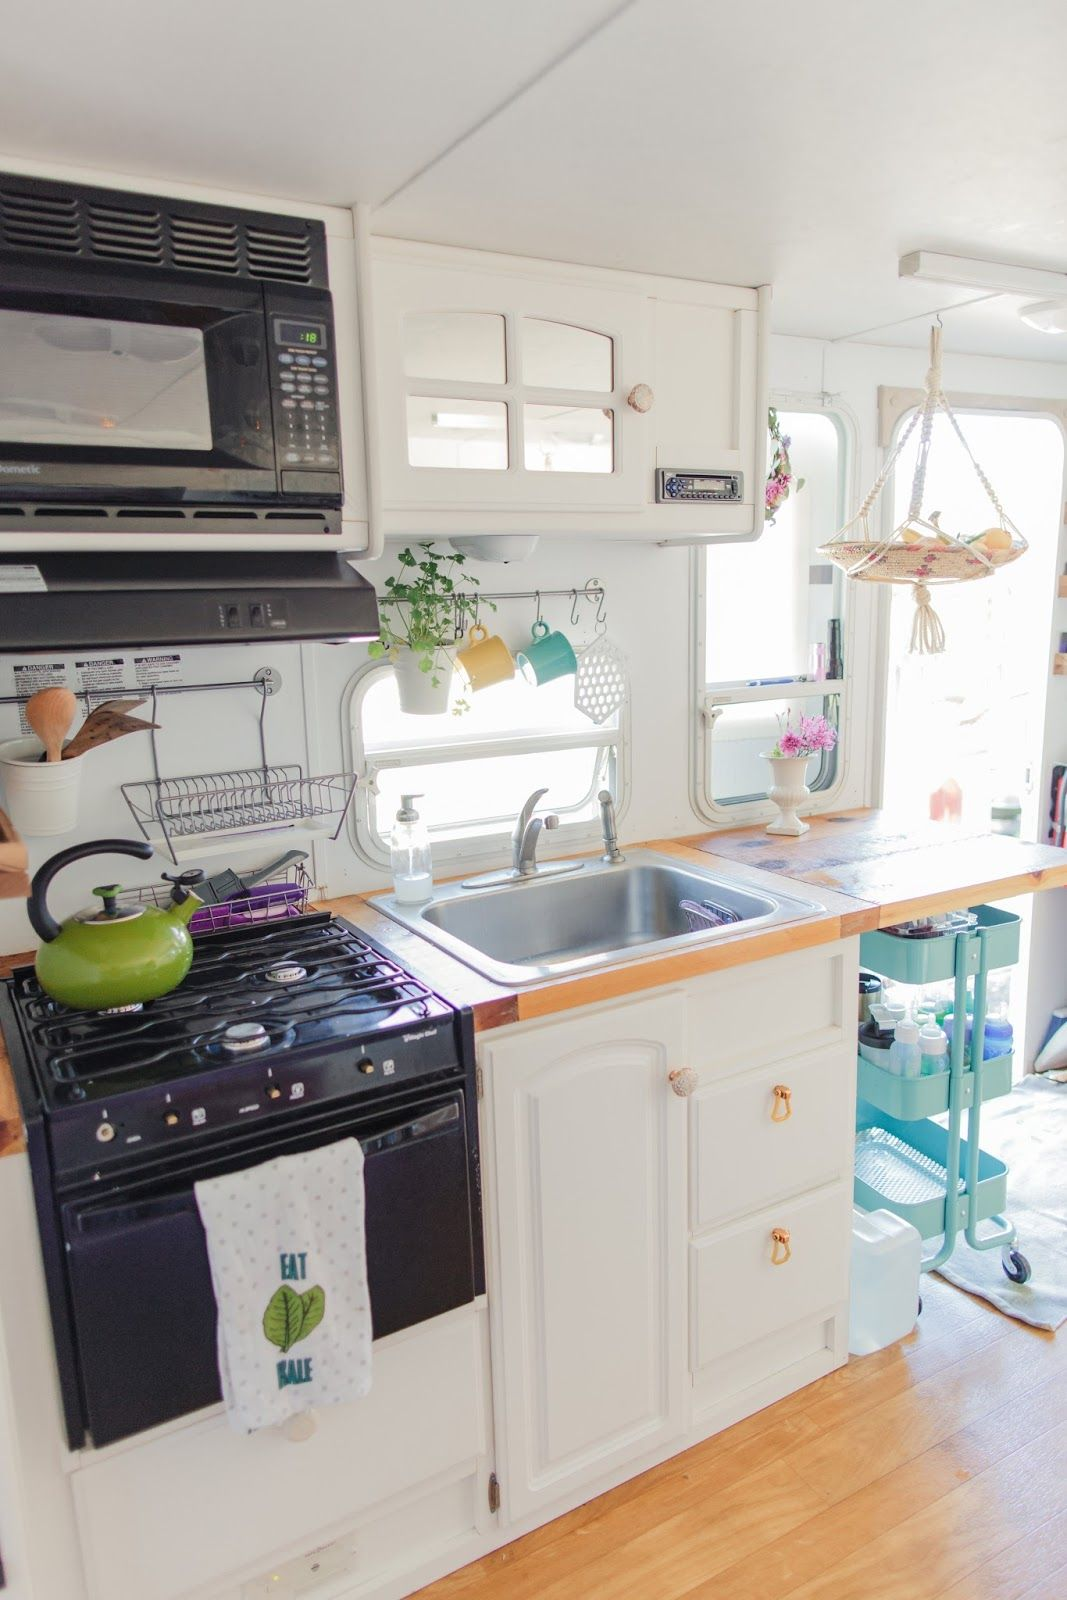 101 Camper Remodel Ideas | Camper remodeling, Articles and Rv